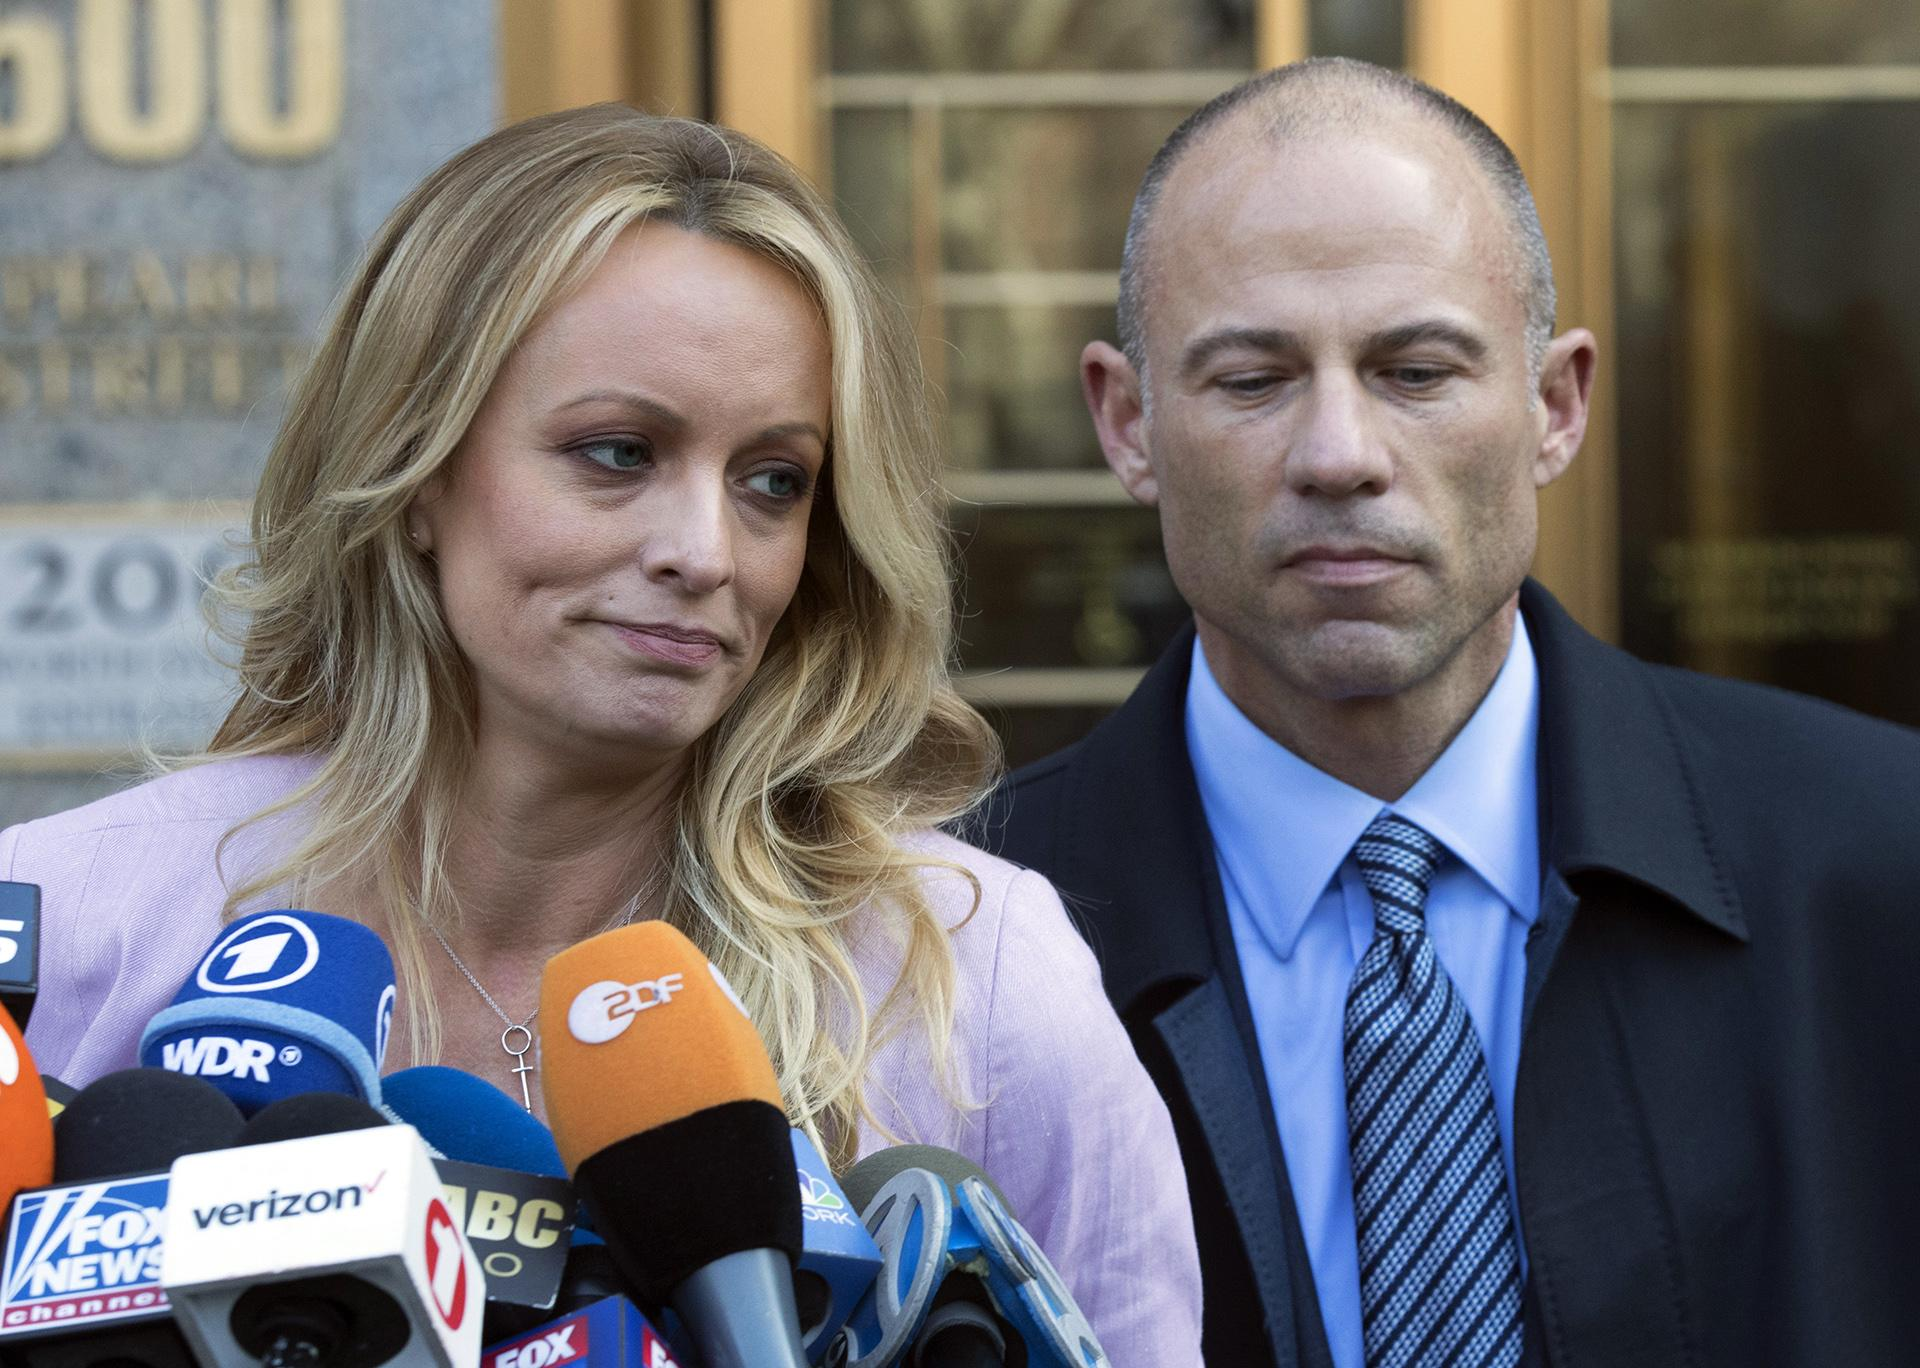 In this April 16, 2018 file photo, adult film actress Stormy Daniels, left, stands with her lawyer Michael Avenatti as she speaks outside federal court, in New York. (AP Photo / Mary Altaffer, File)